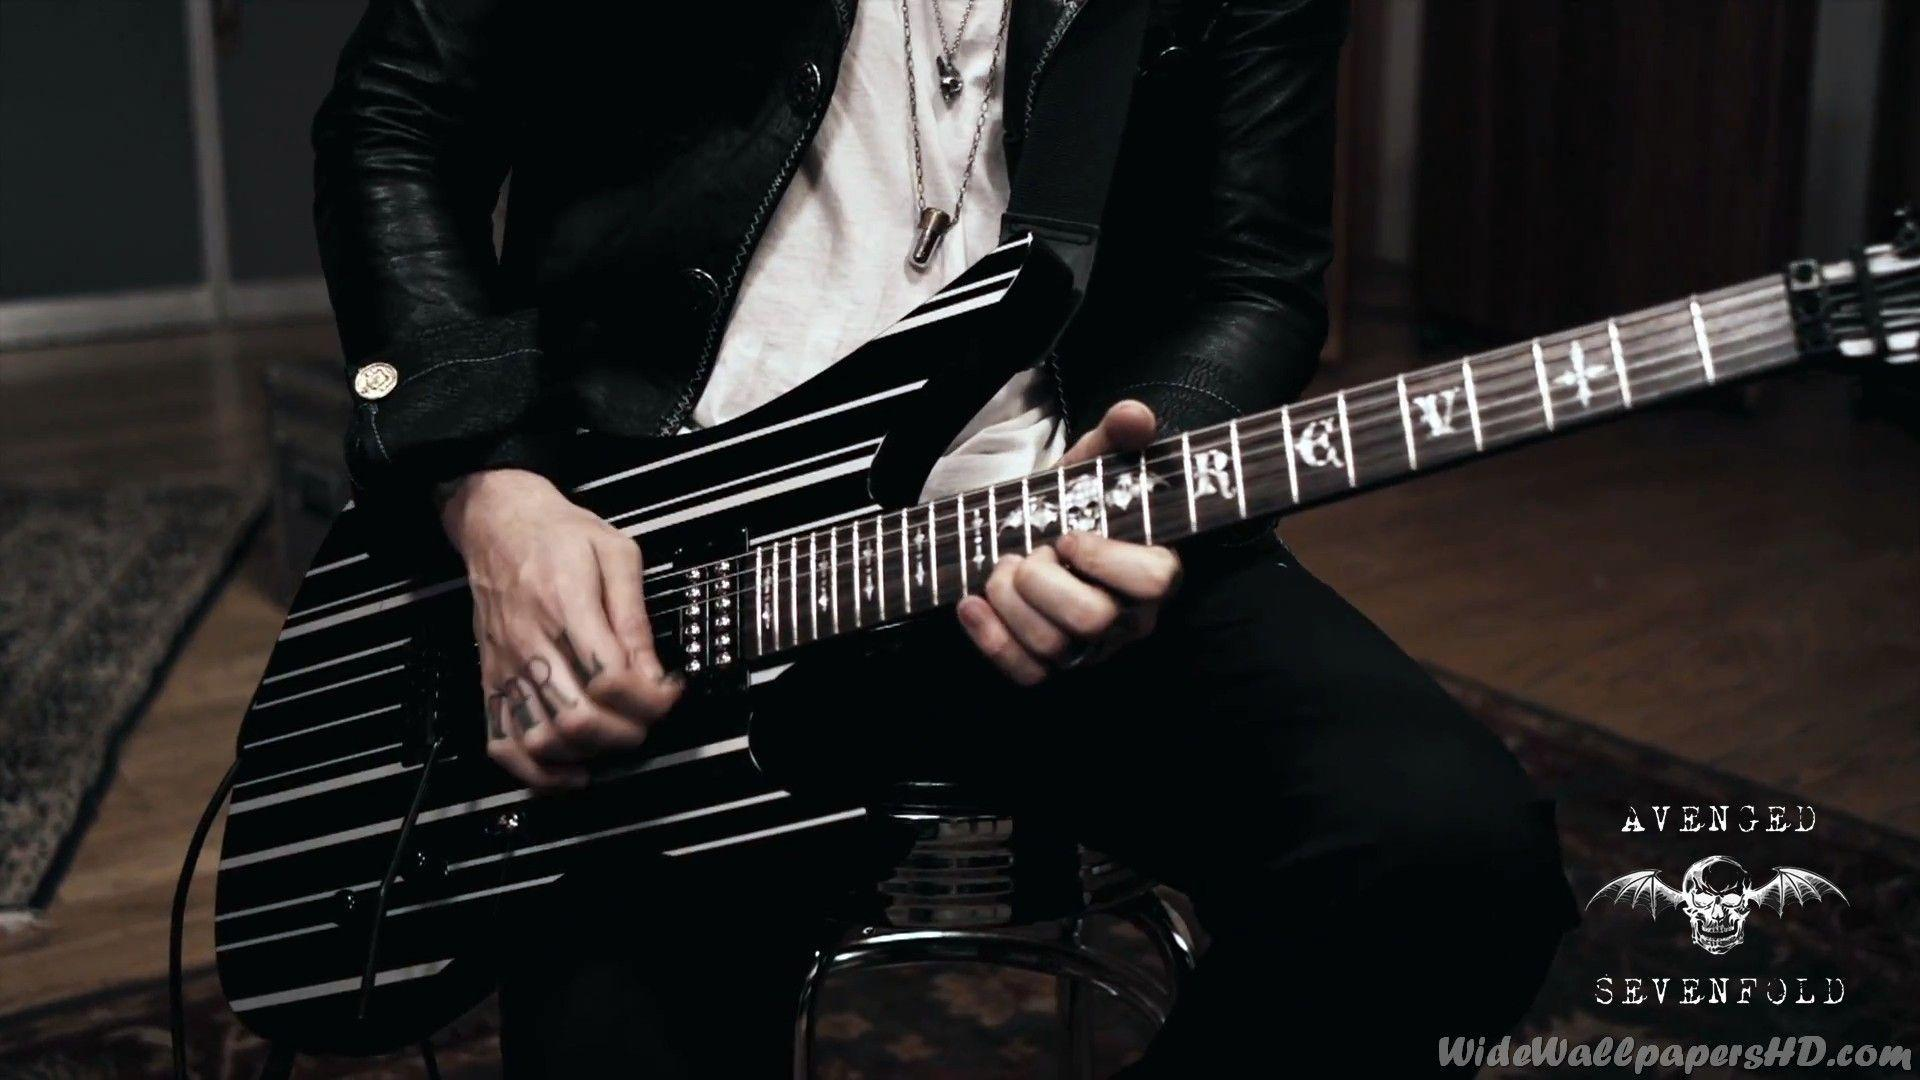 Sum 41 Wallpaper Hd Synyster Gates 2016 Wallpapers Wallpaper Cave